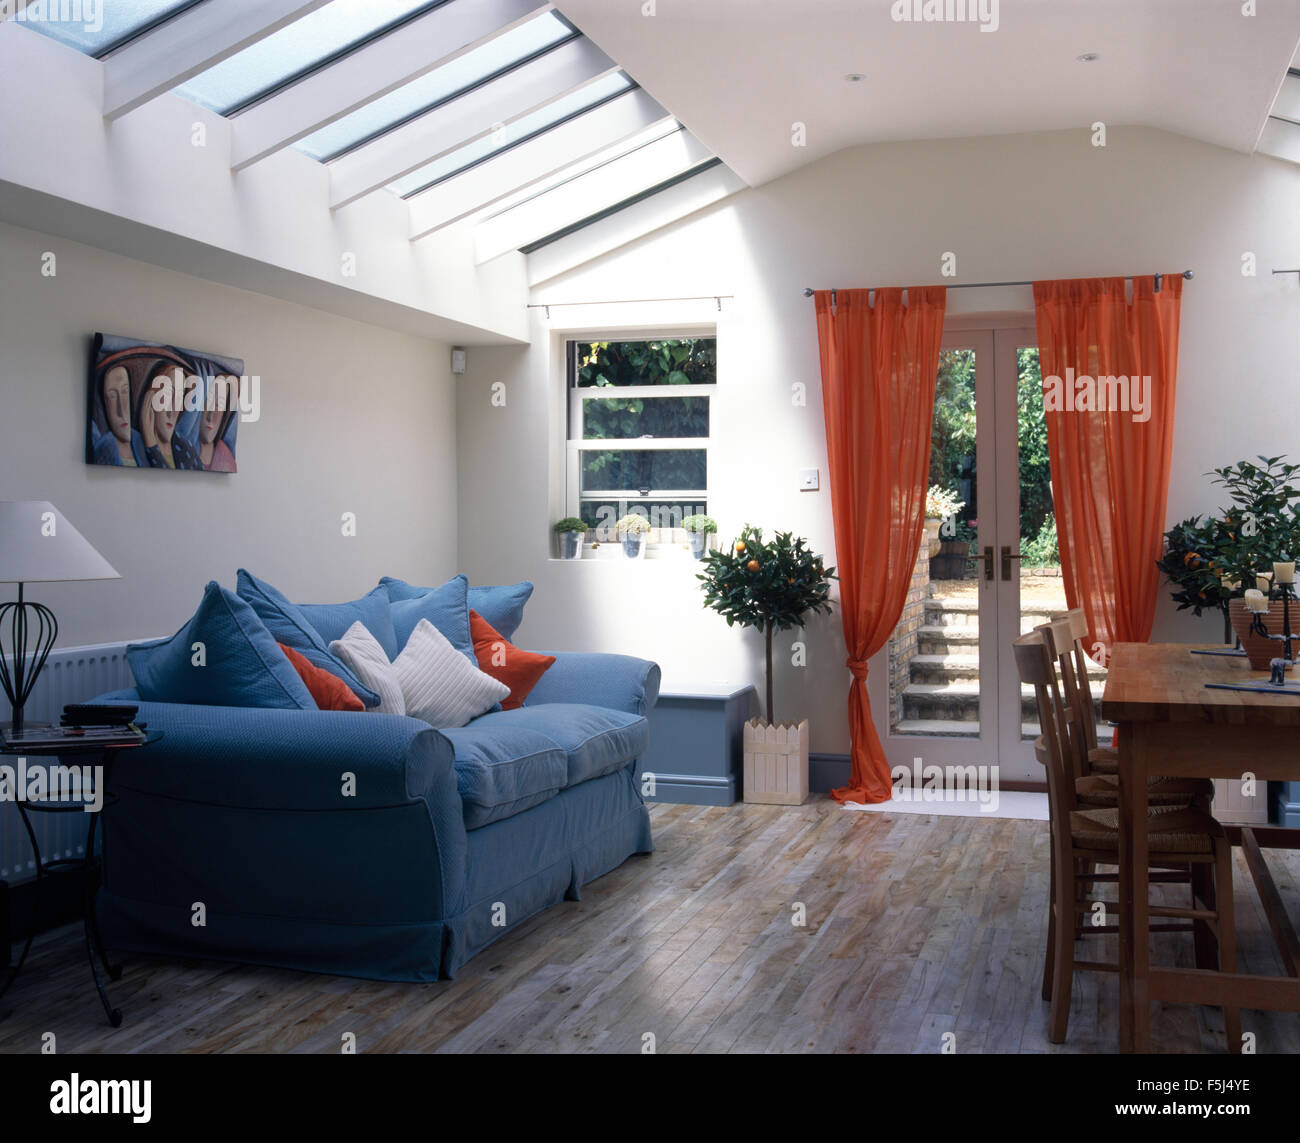 Blue sofa and orange voile drapes in living and dining room extension with wooden flooring Stock Photo